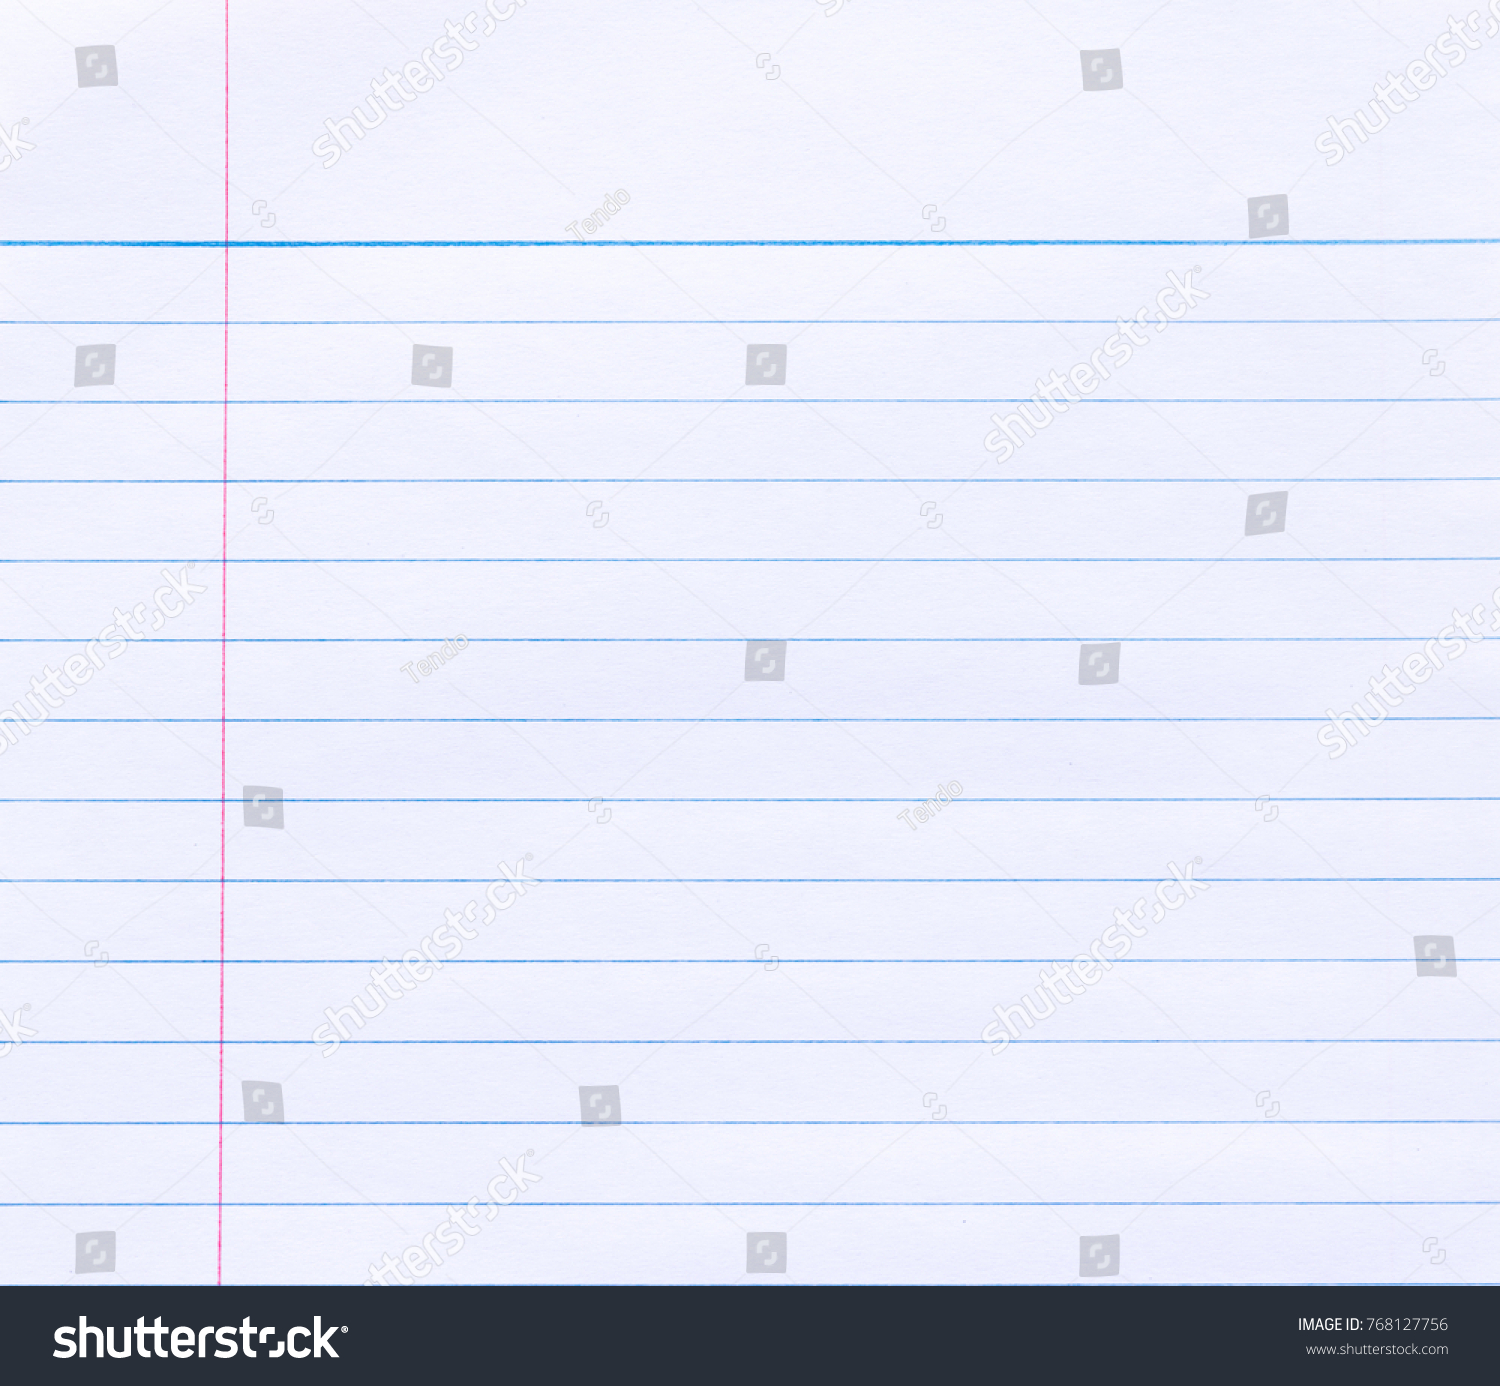 Editable Lined Paper Line Paper Rent A Room Contract Stock Photo Notebook Lined  Paper Background 768127756  Editable Lined Paper